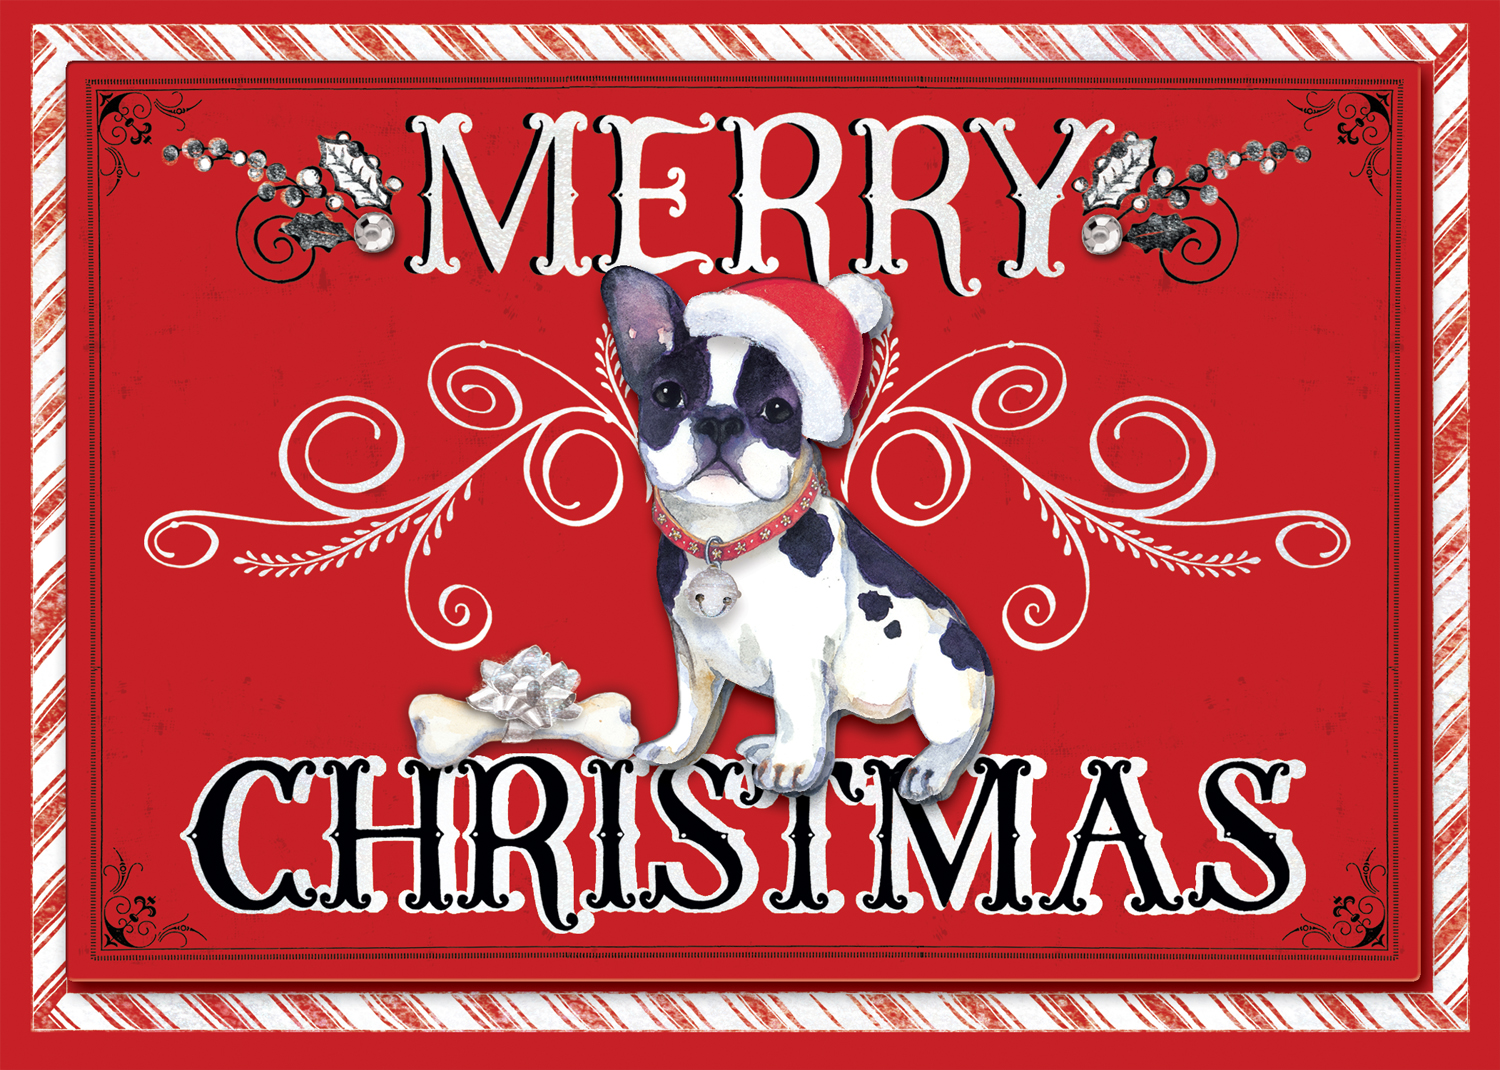 Punch studio molly rex christmas boxed greeting cards santa paws punch studio molly rex christmas boxed greeting cards m4hsunfo